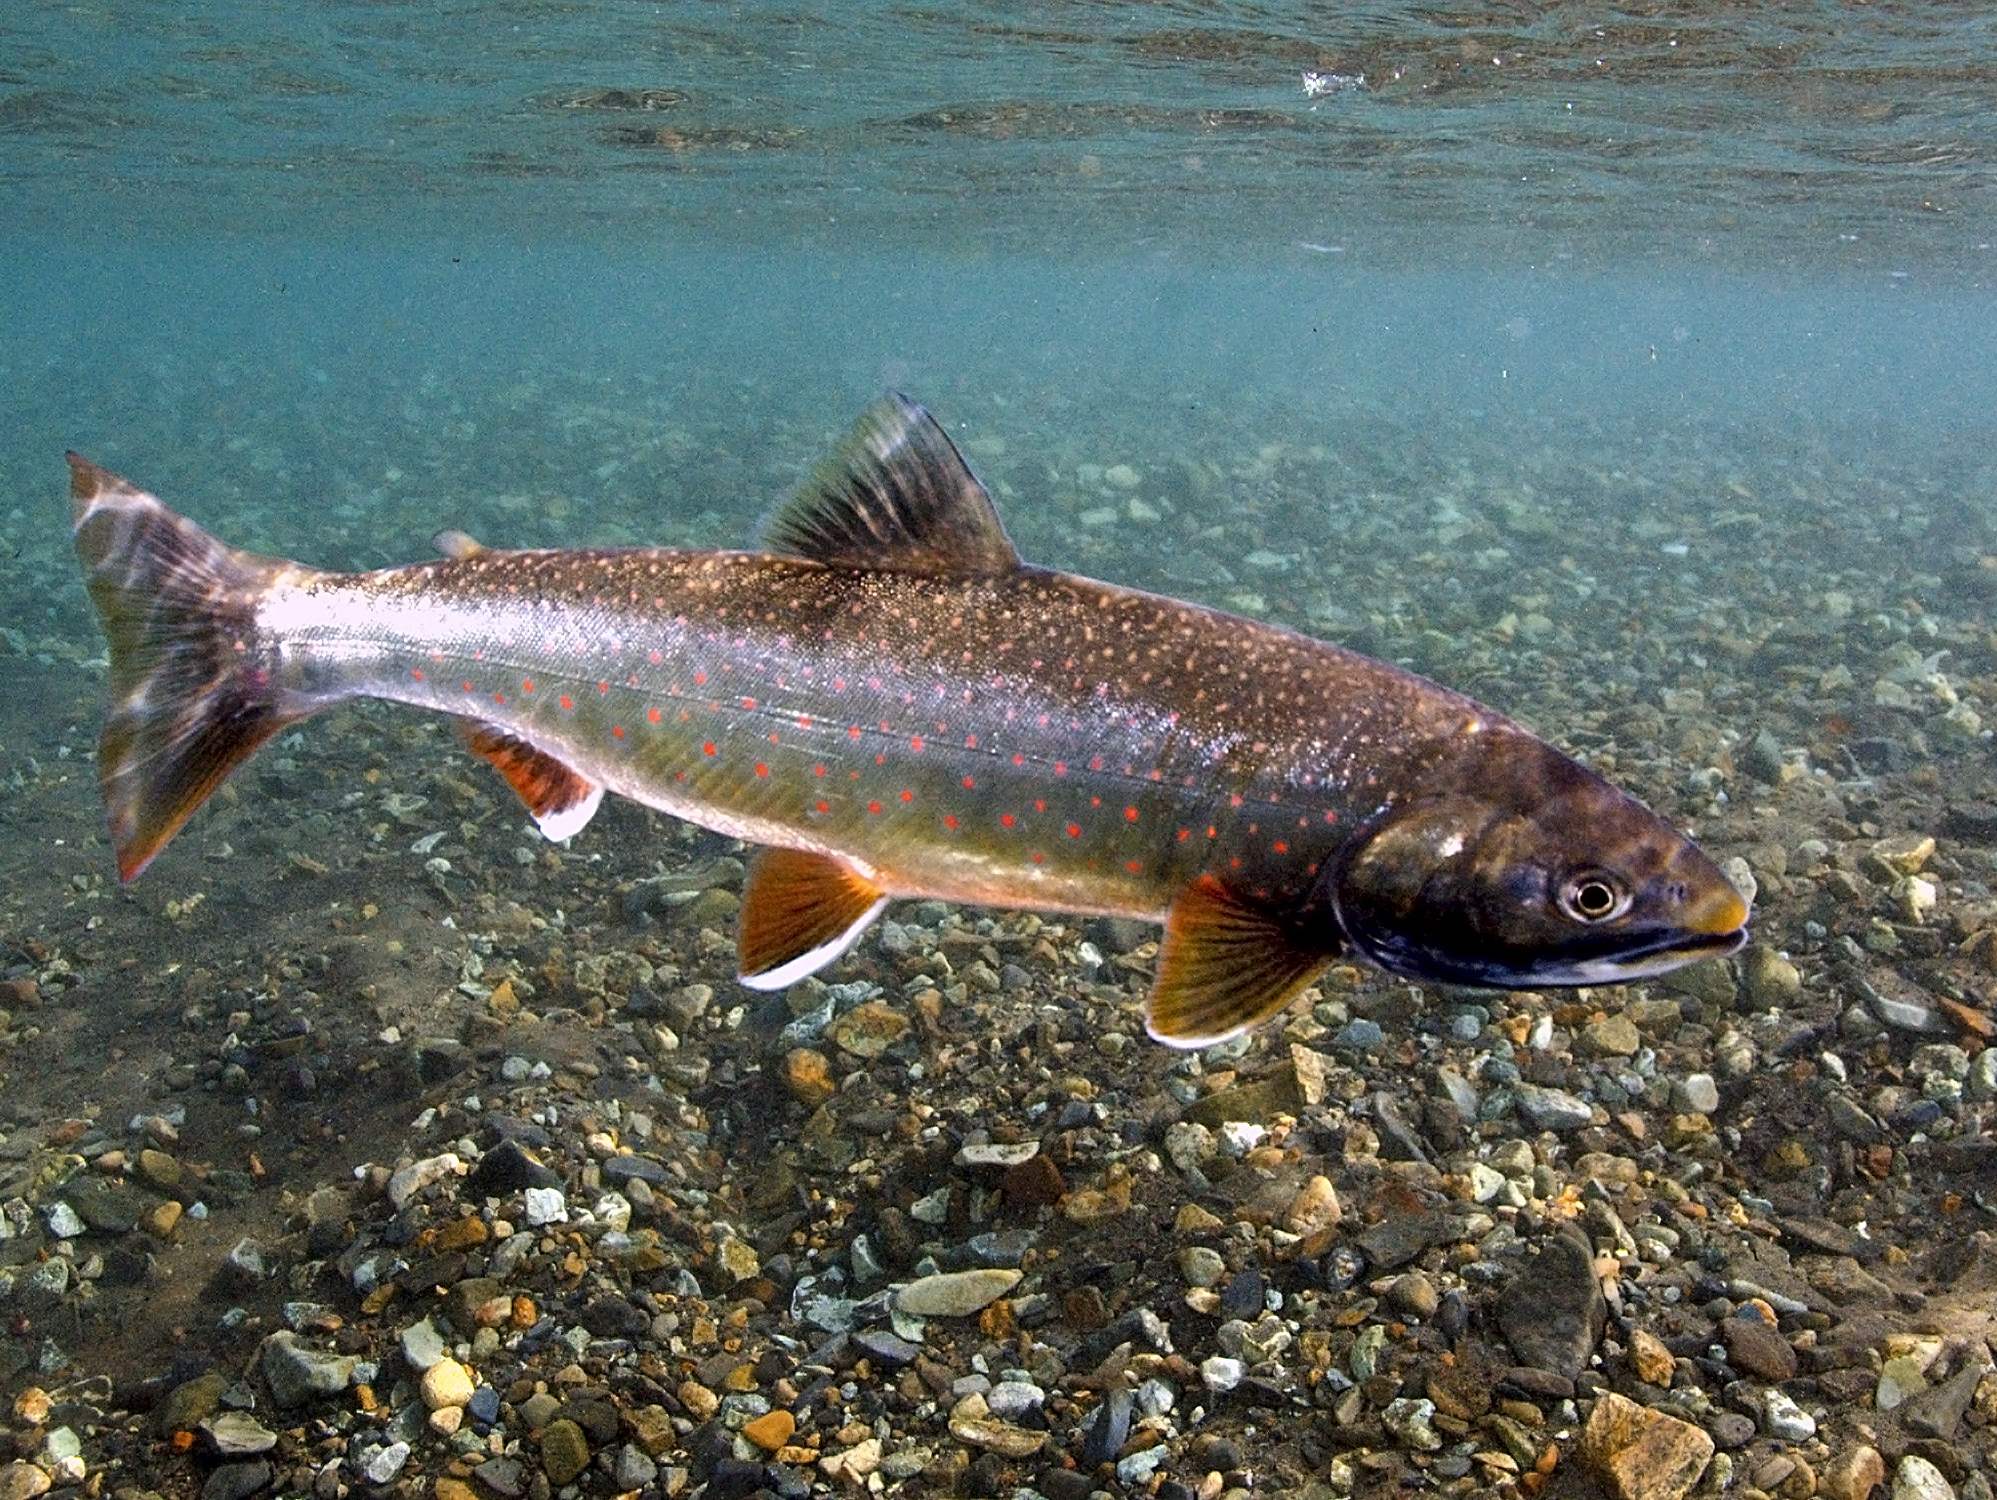 A Dolly Varden in a blue stream wih a gravel bottom, showing the red and orange spots on its blue-gray sides.